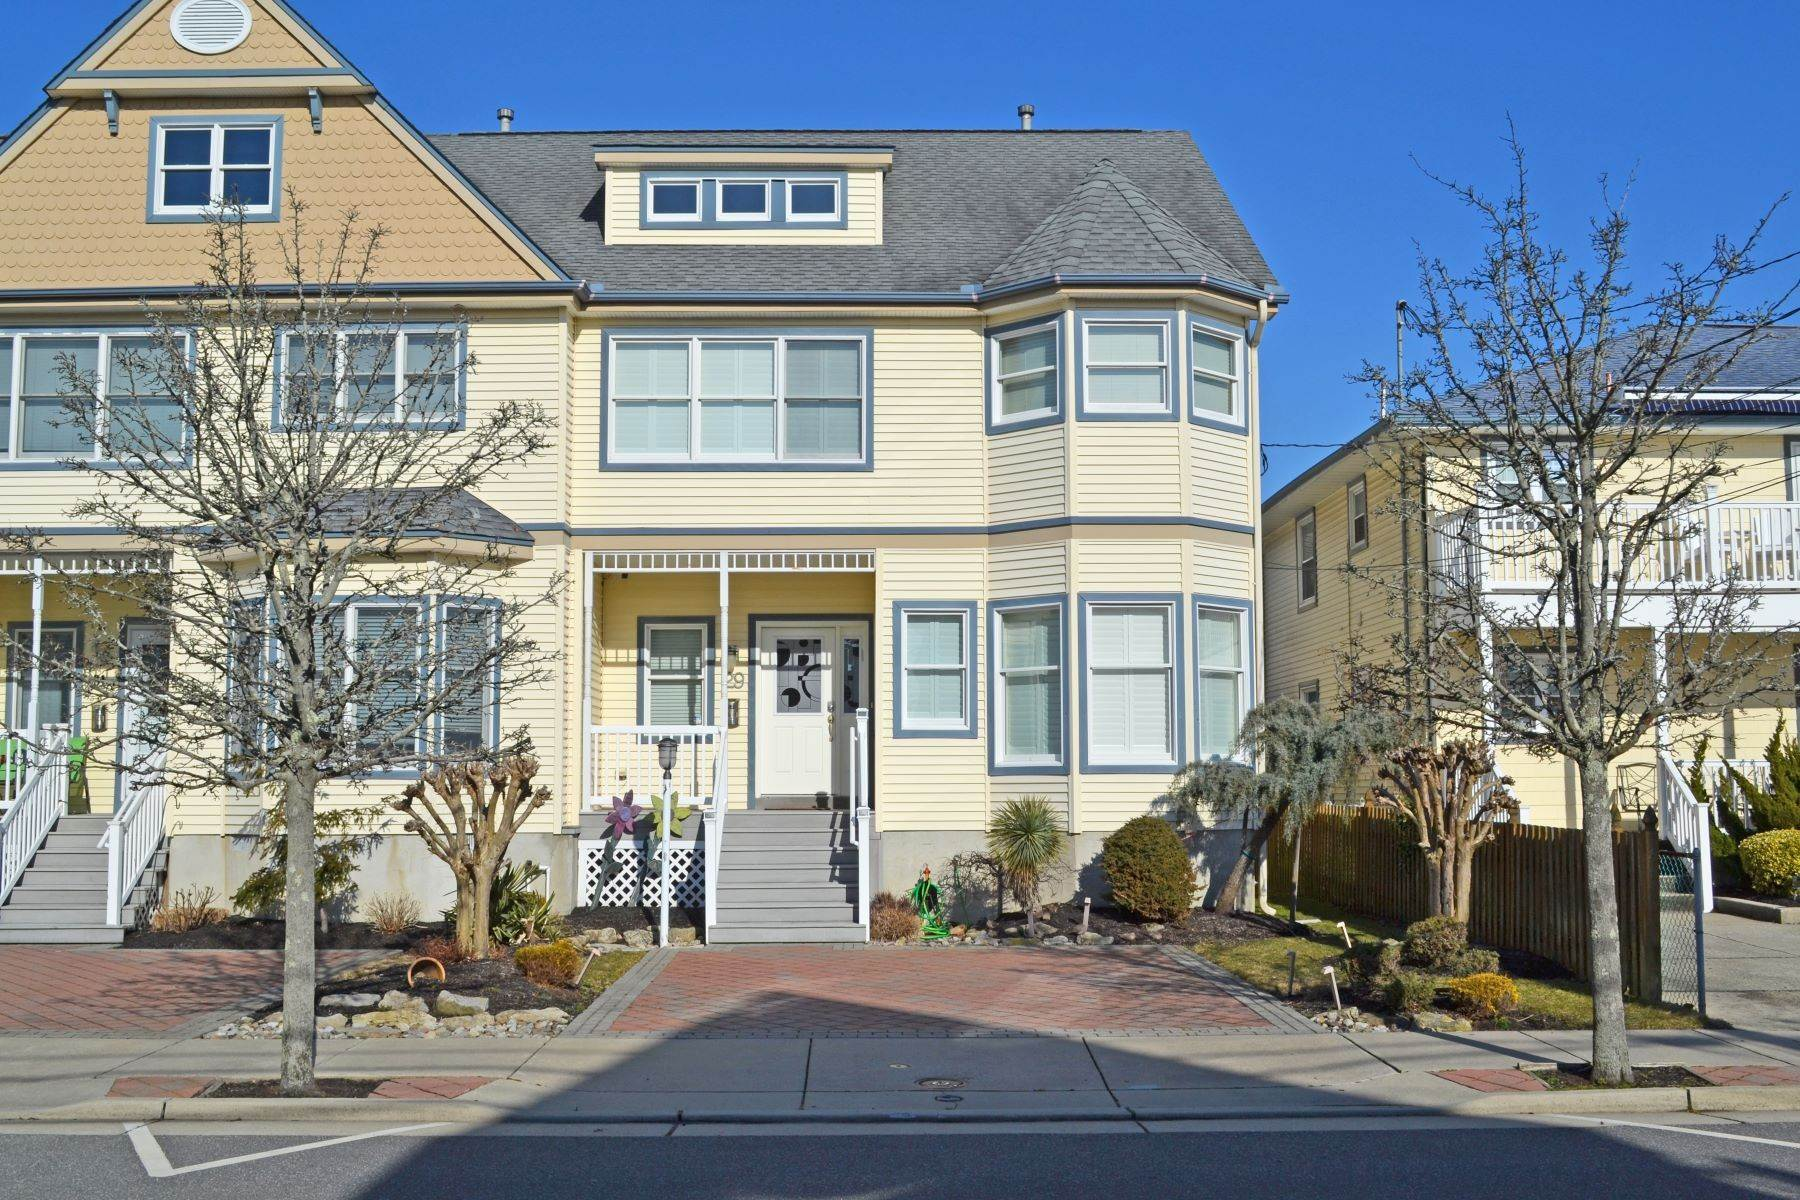 3. Single Family Homes for Sale at 29 N Jefferson Margate, New Jersey 08402 United States